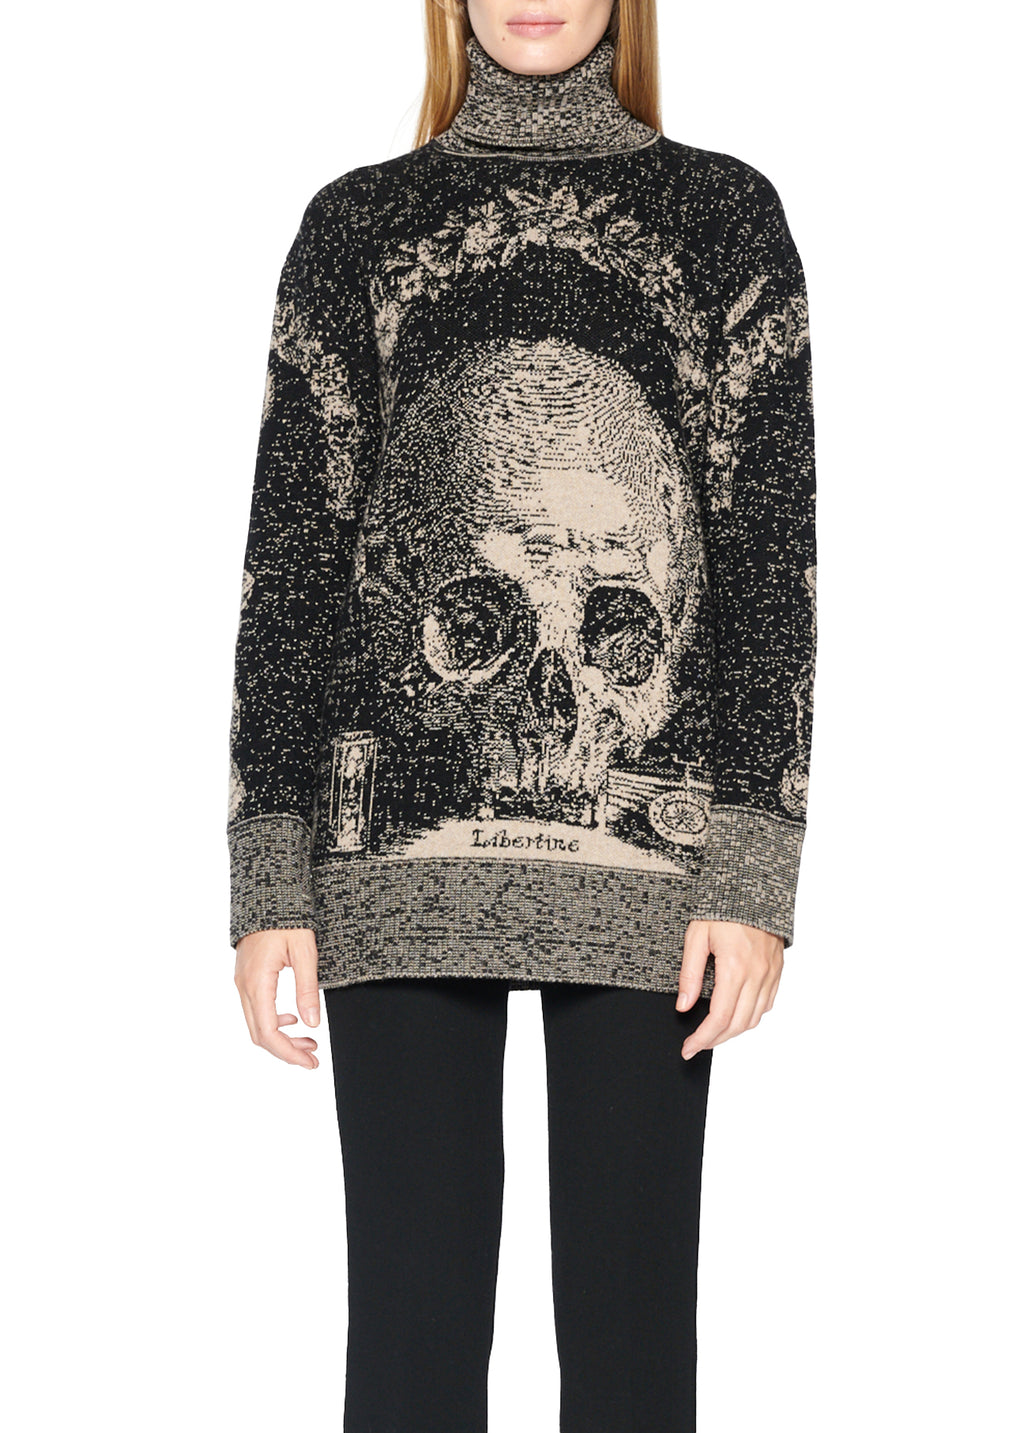 'MEMENTO MORI' CASHMERE TURTLENECK SWEATER - Women's Knits - Libertine